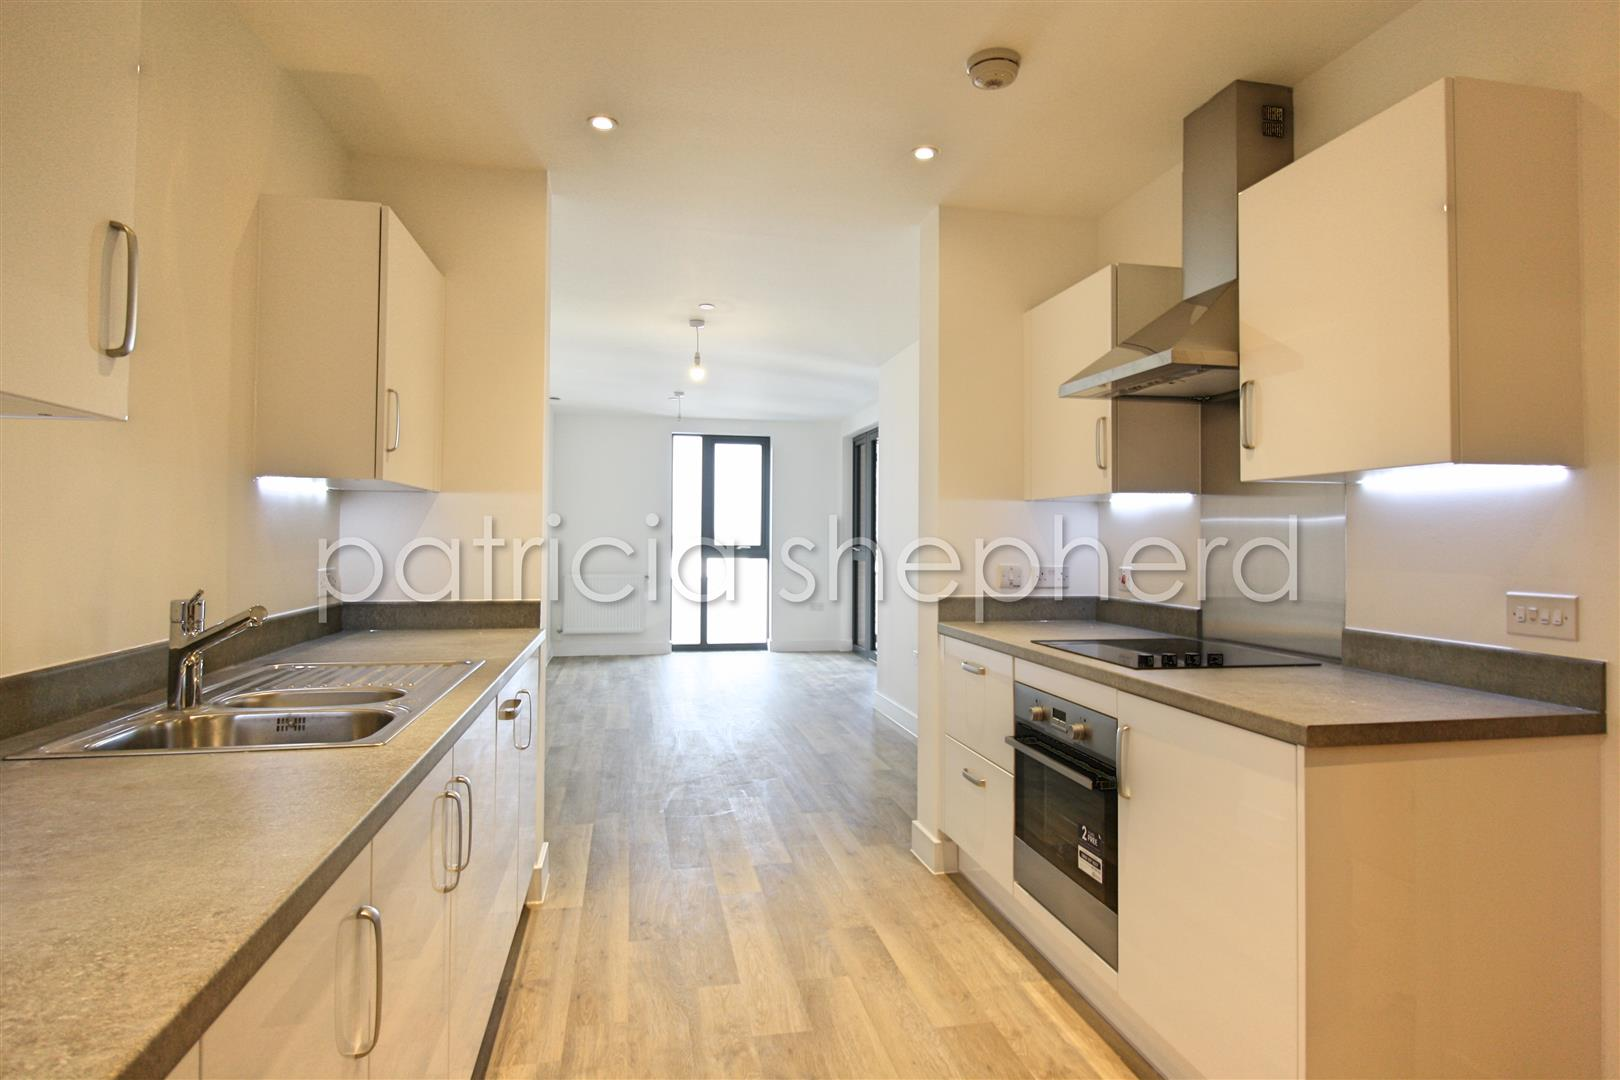 1 bed flat to rent in Tavernelle House, 289 High Street, SM1